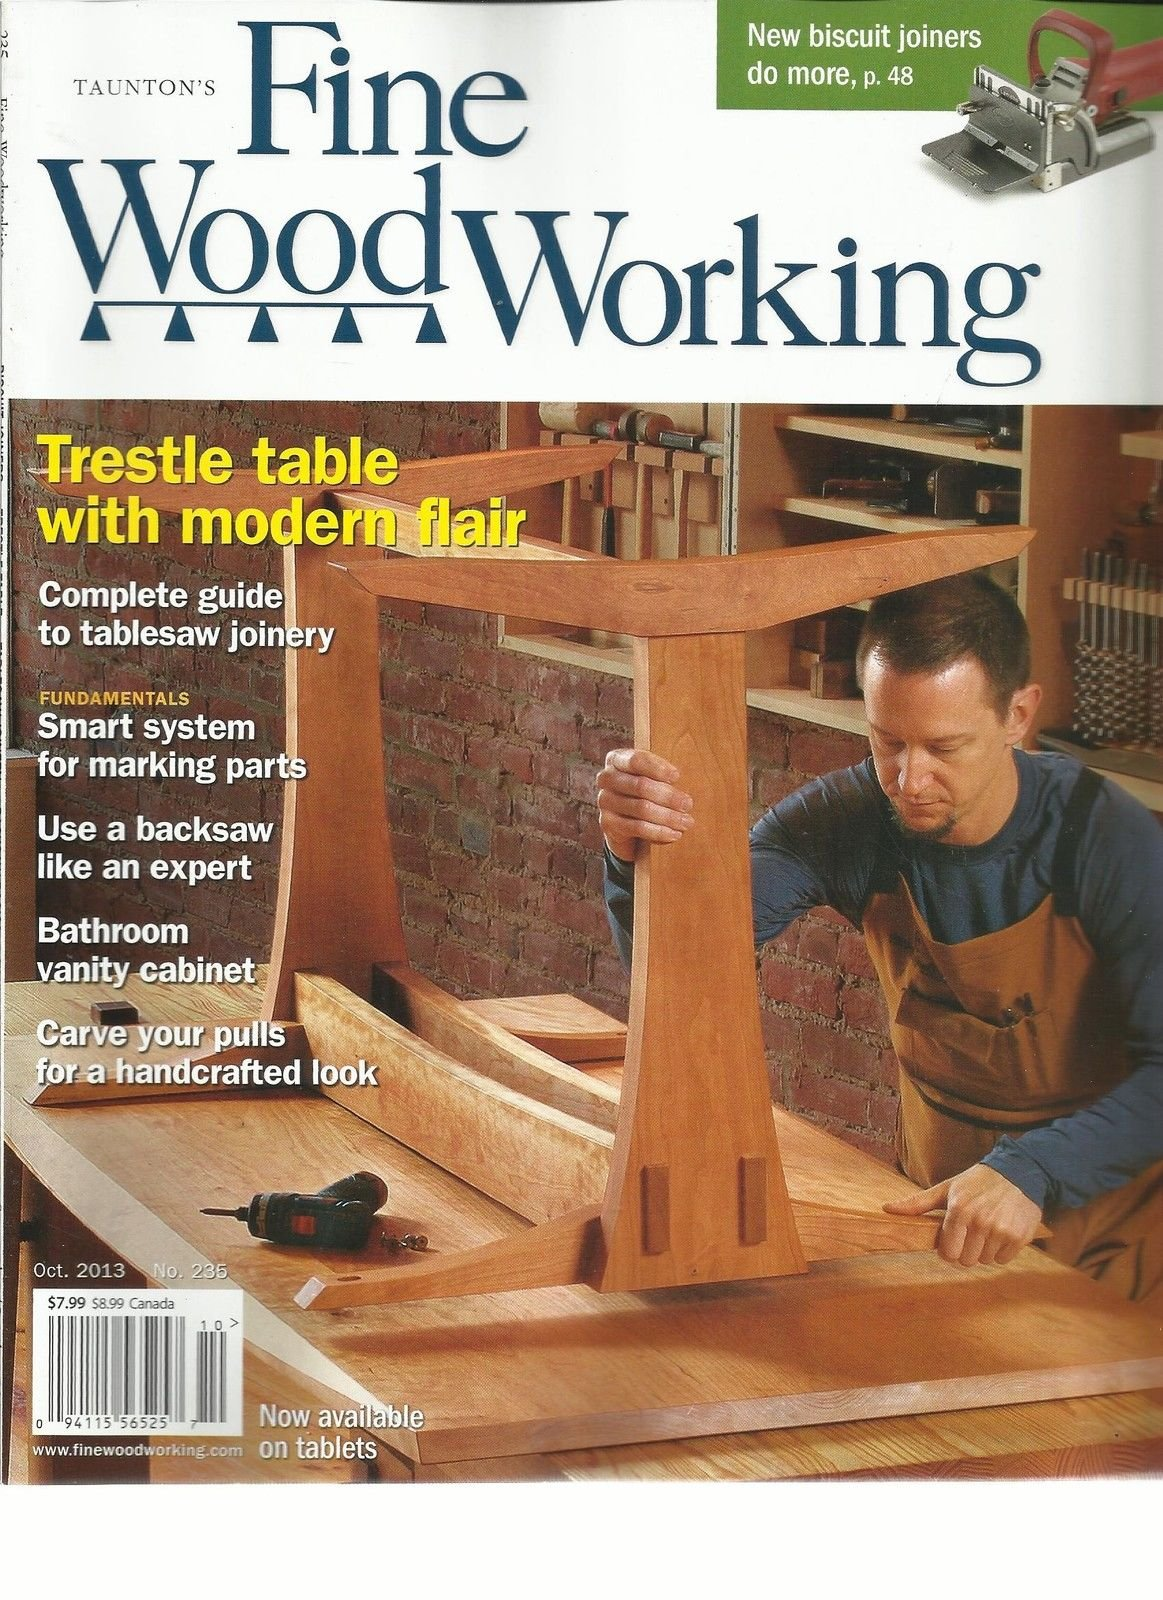 TAUNTON'S FINE WOOD WORKING, OCTOBER, 2013 (TRESTLE TABLE WITH MODERN FLAIR)